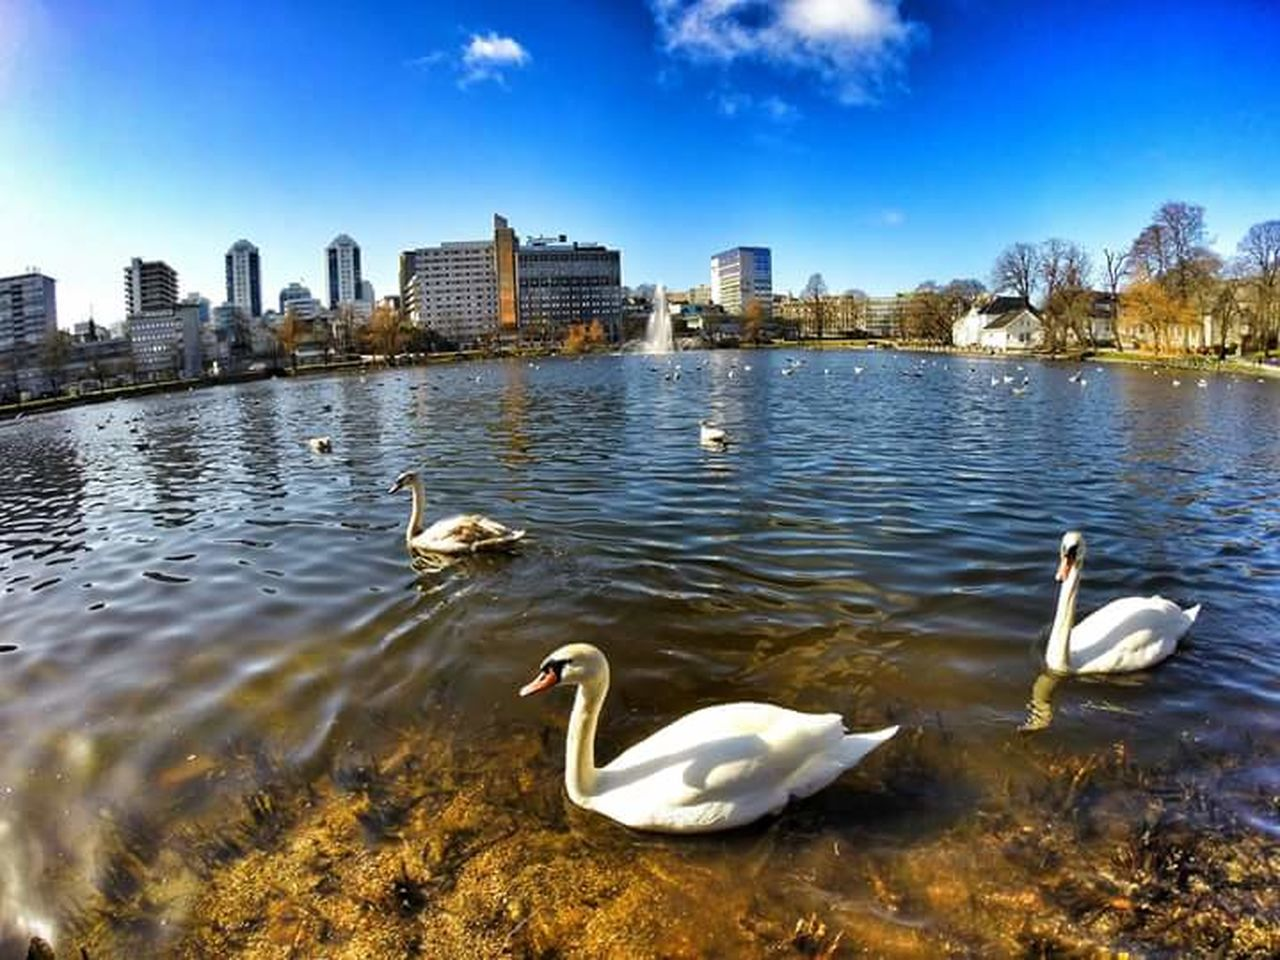 Stavanger Norway Norge Byparken City Modern Urban Skyline Cityscape Outdoors Travel Destinations Swans Lake Aroundtheworld Follow4follow Eyemphotography Travel Photography Goprophotography NorwayTourism Traveladdict Worldplaces Tourism Landscape